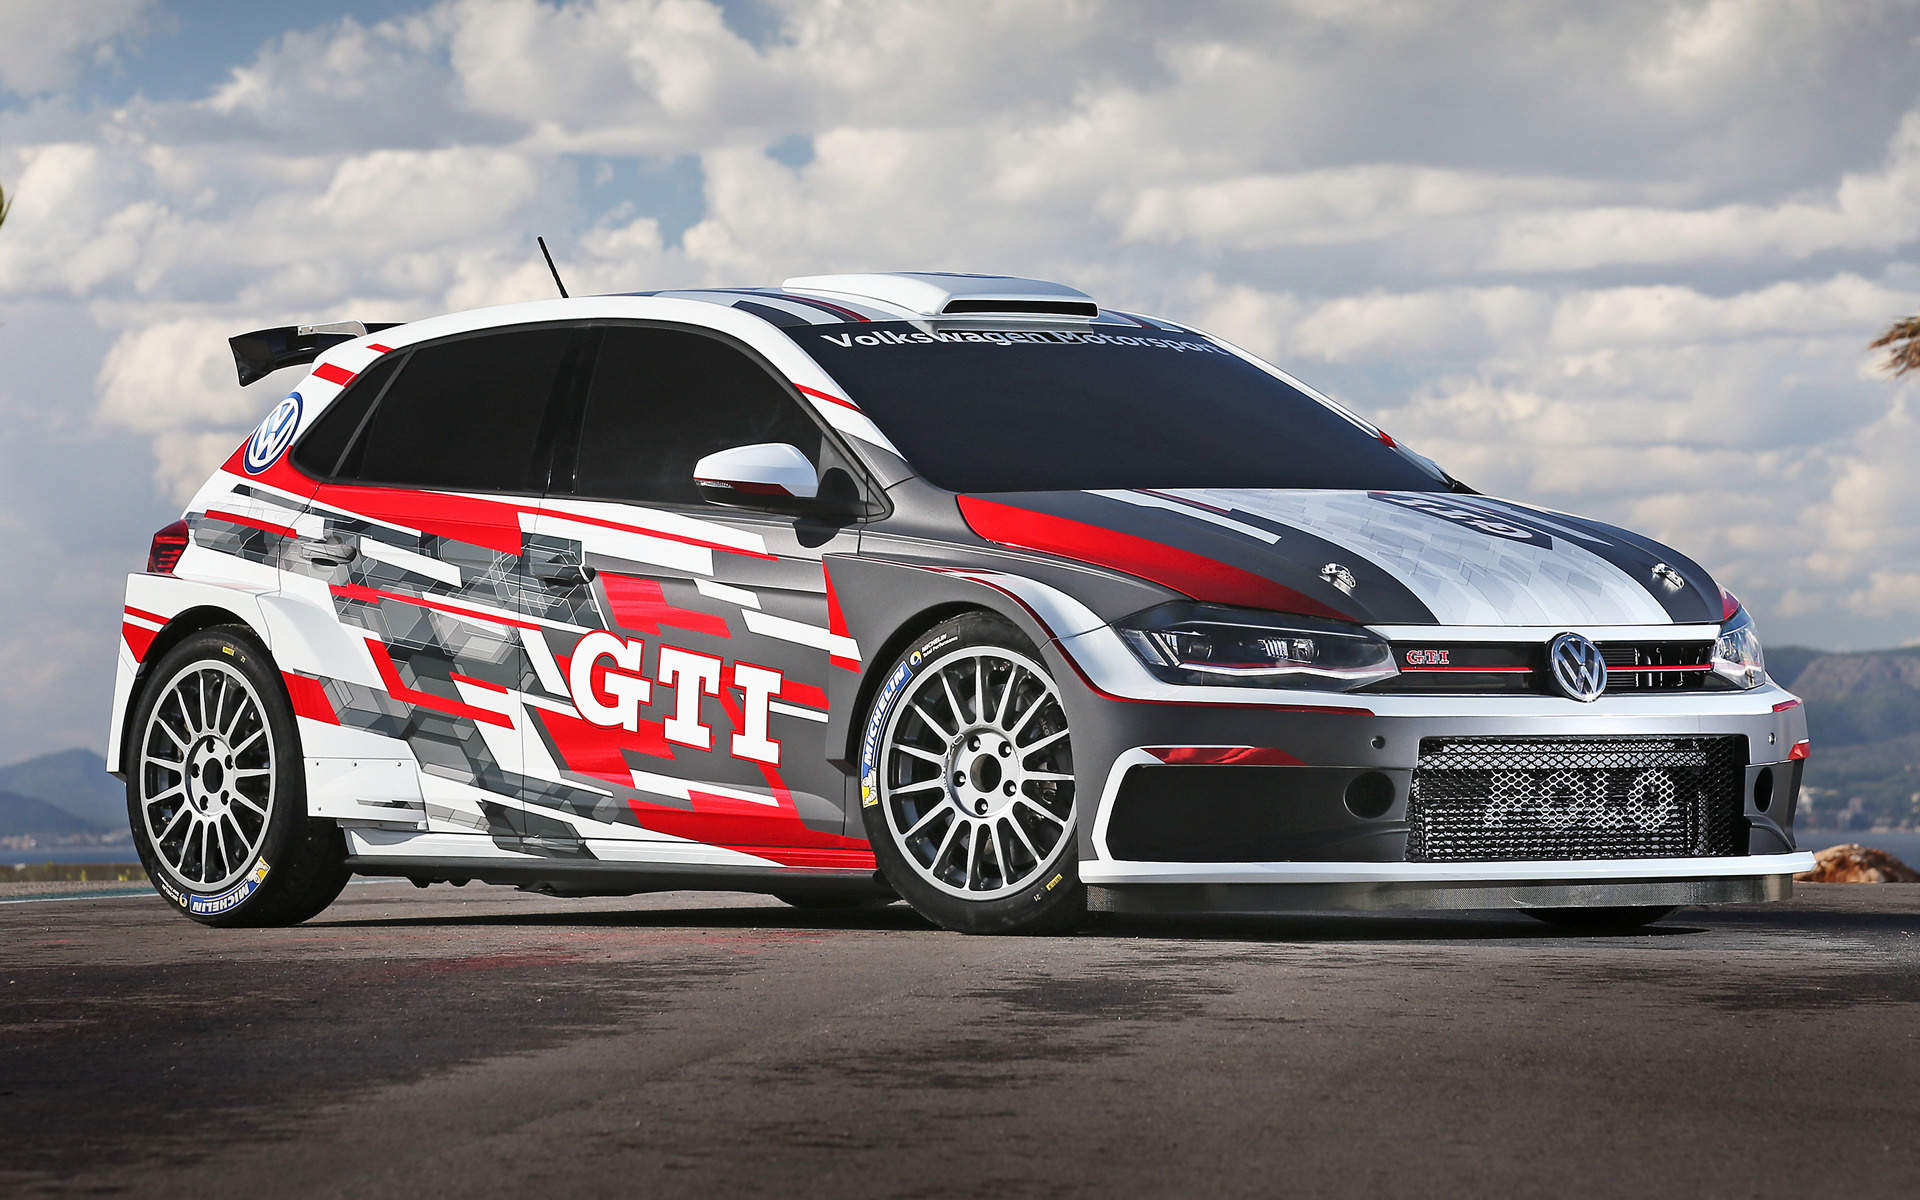 Rally Car Hd Wallpaper Volkswagen Polo Gti R5 2018 Wallpapers And Hd Images